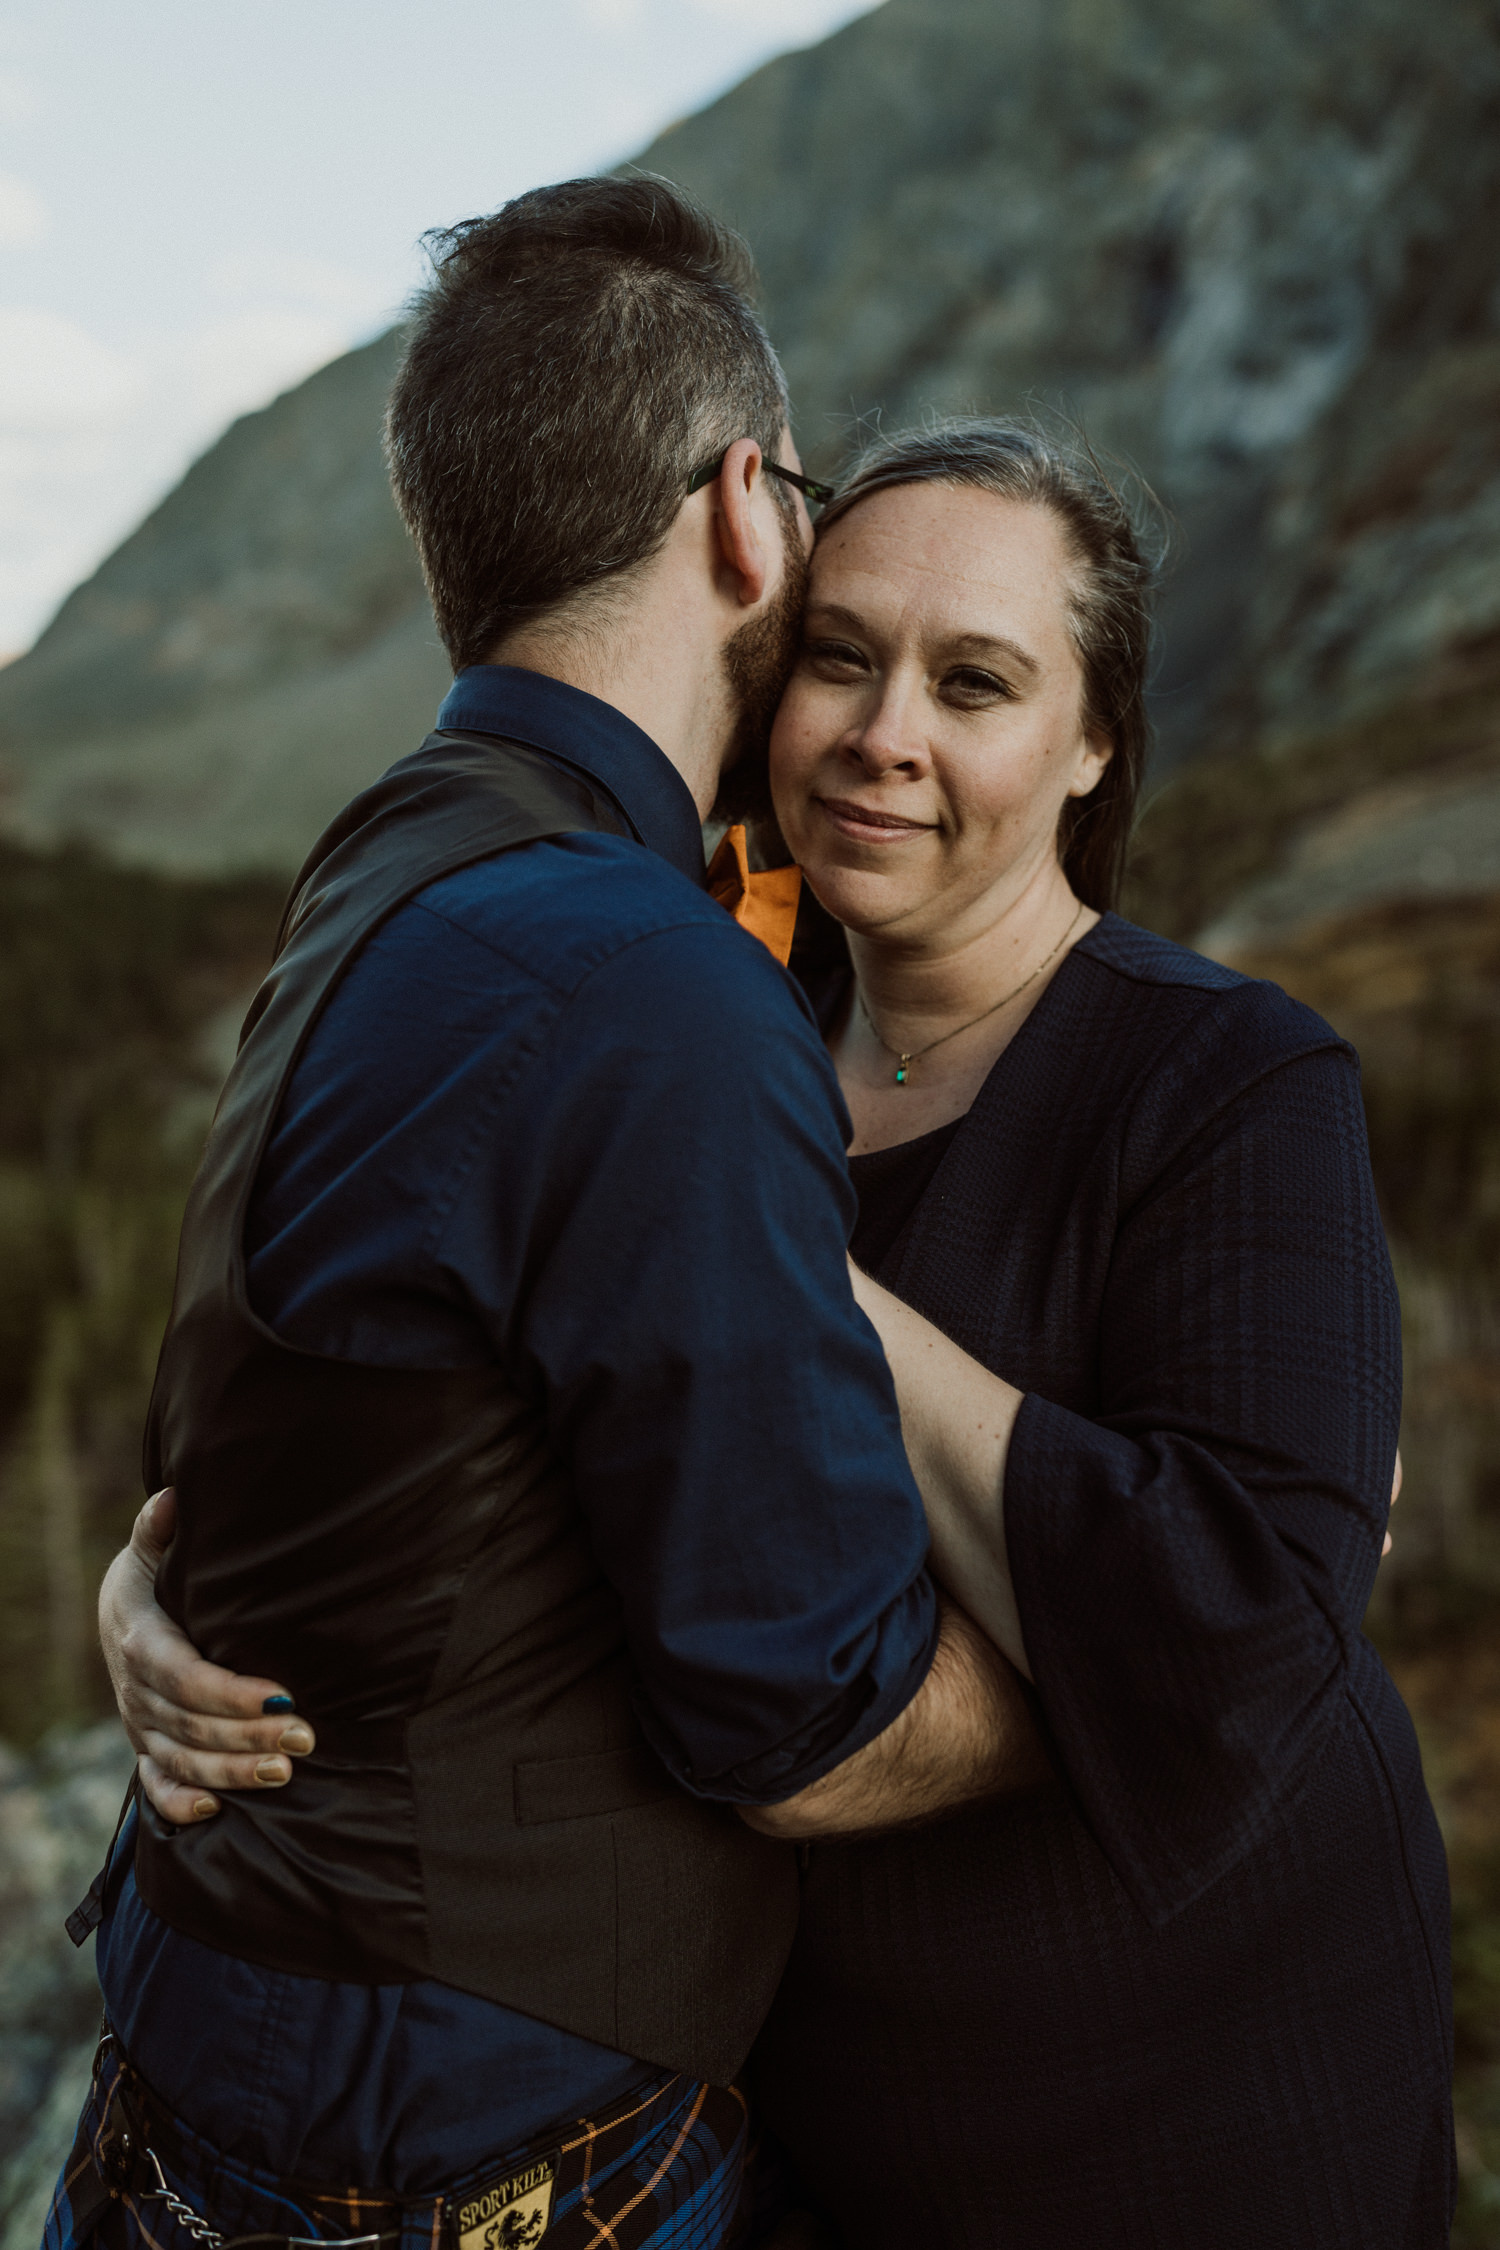 breckenridge-elopement-11.jpg